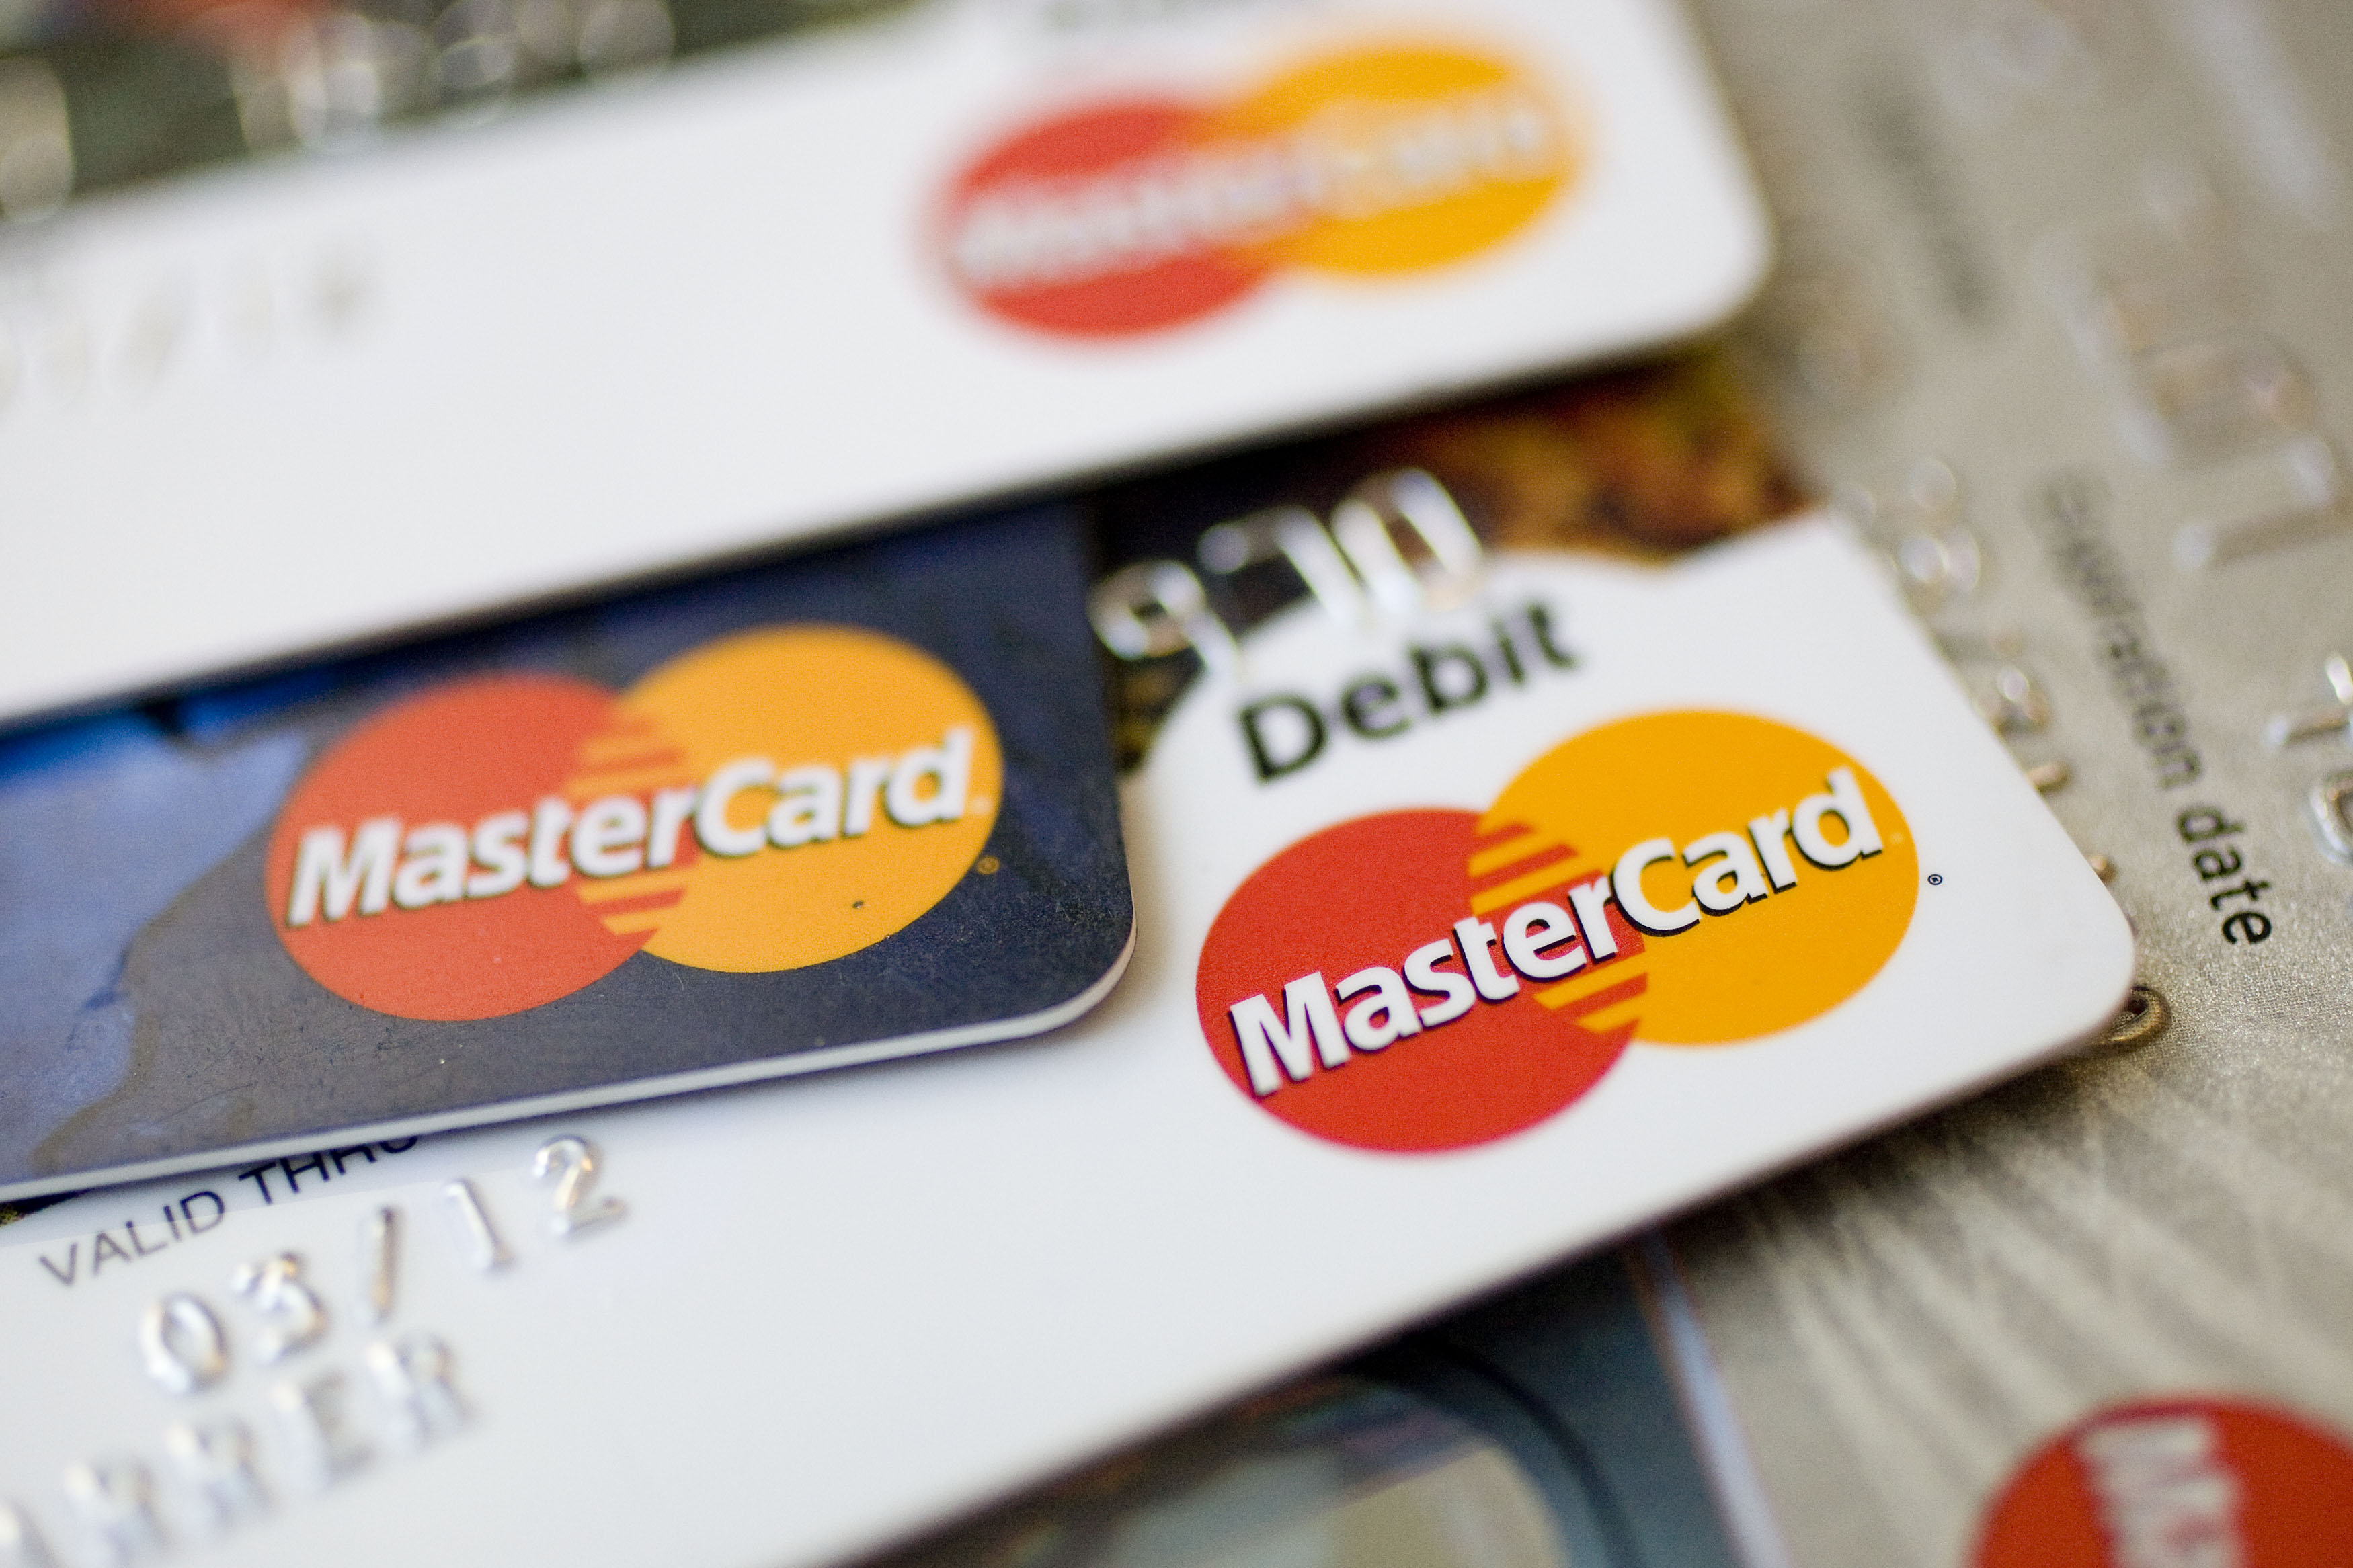 MasterCard logos appear on credit and debit cards arranged for a photograph in New York, U.S., on Thursday, July 30, 2009.